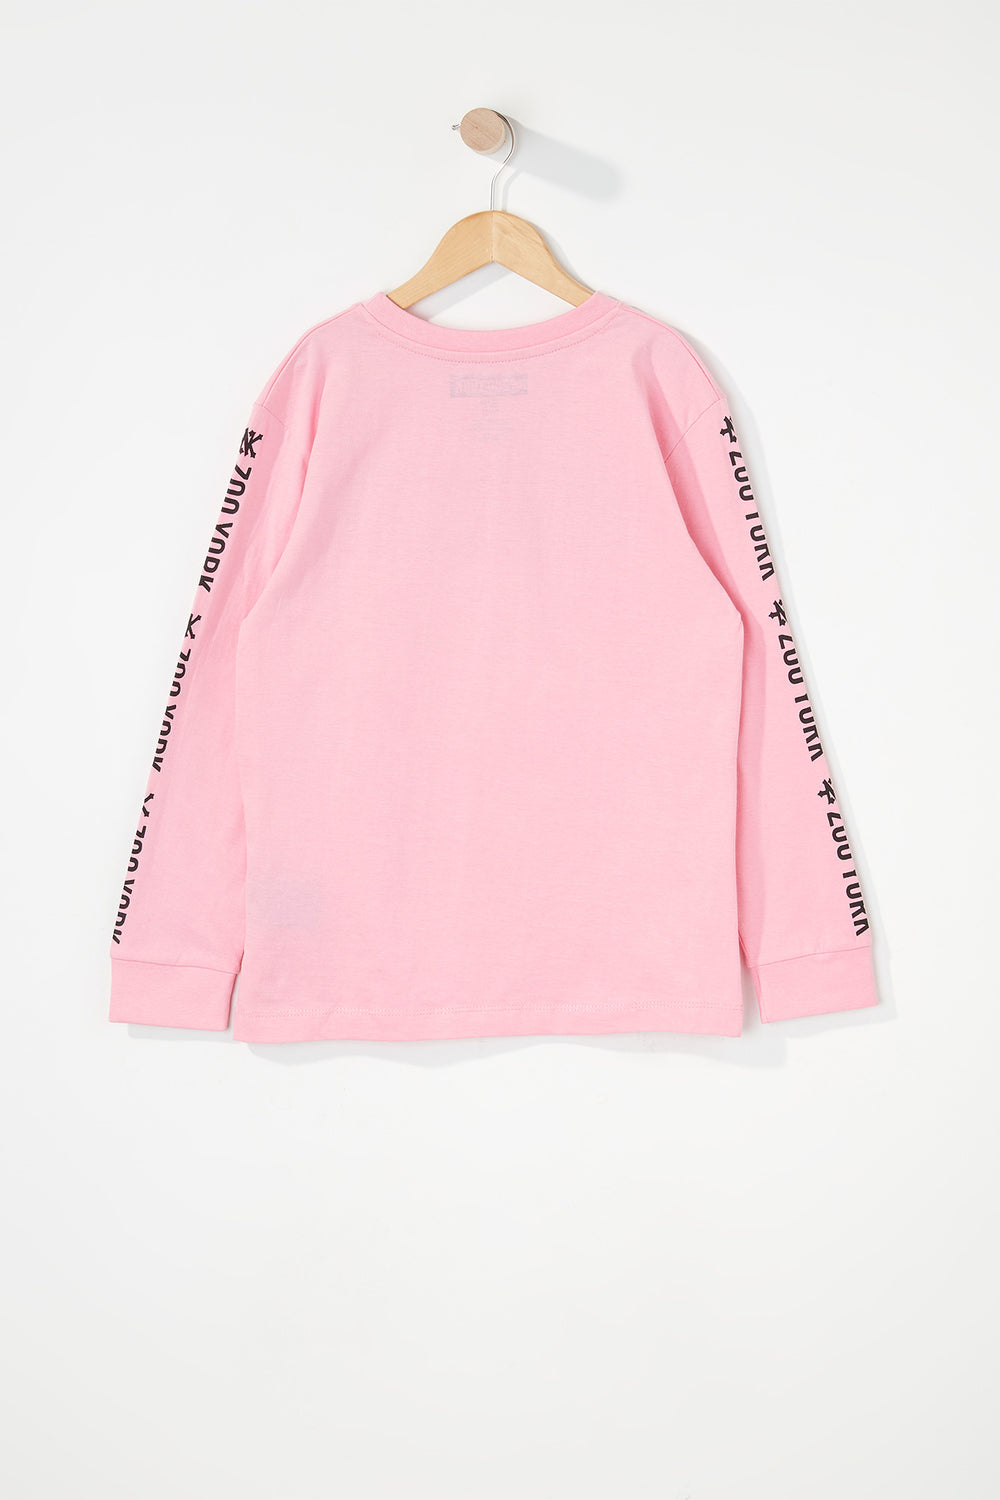 Zoo York Boys Classic Logo Long Sleeve Shirt Pink